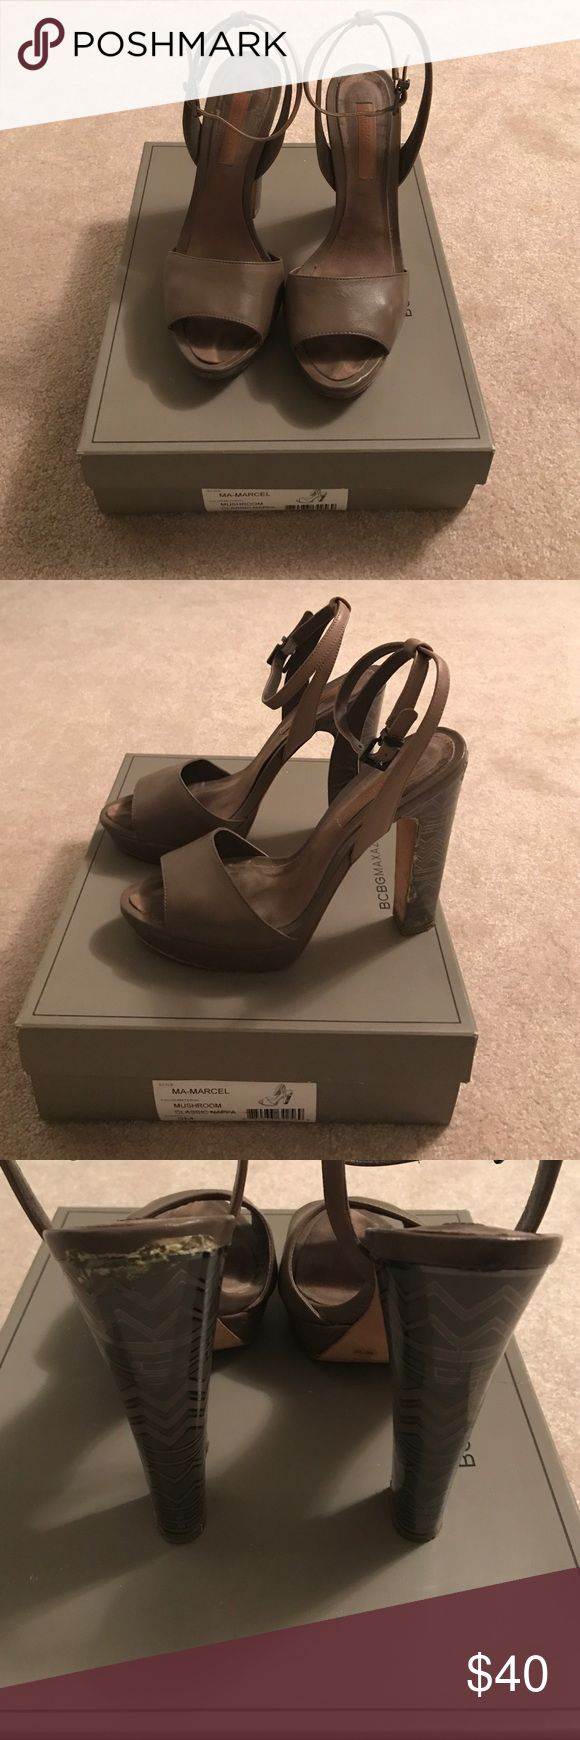 BCBG Max Azria Marcel Platform Sandal 9 BCBG Max Azria Marcel Platform Sandal size 9. Color: mushroom. Etched silver metallic heel. Some reside on left heel from reinforcing heel cover. Slight knicks on Platform. Comfortable neutral Sandal. BCBGMaxAzria Shoes Sandals